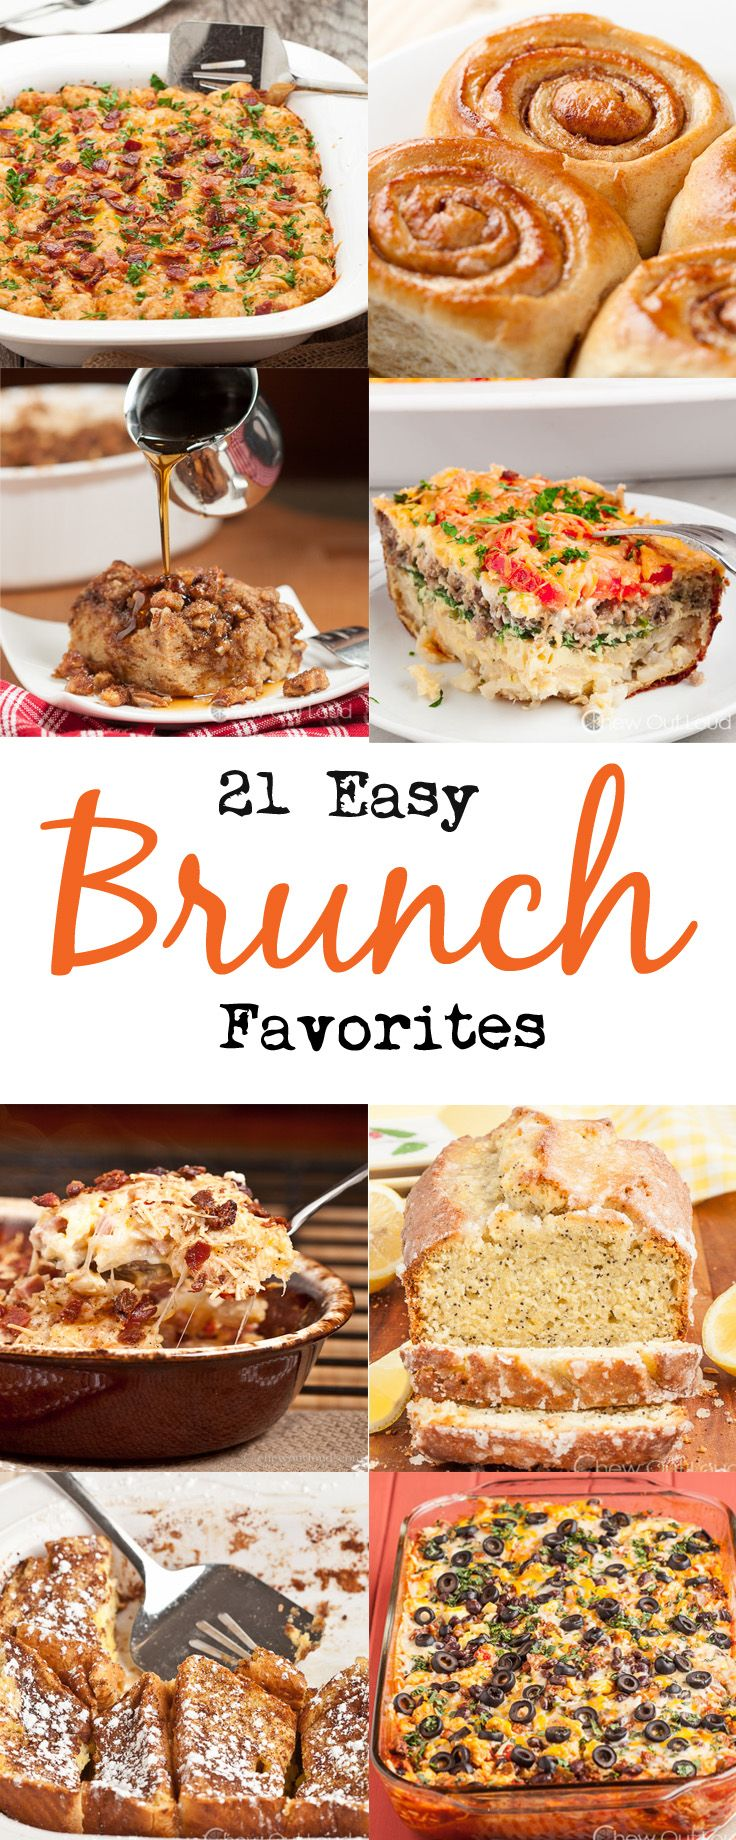 Brunch time is the best, and here are some easy brunch favorites your family will love. Most of them are make-ahead recipes! #brunch #recipes #breakfast #recipes #easy #brunch #recipe